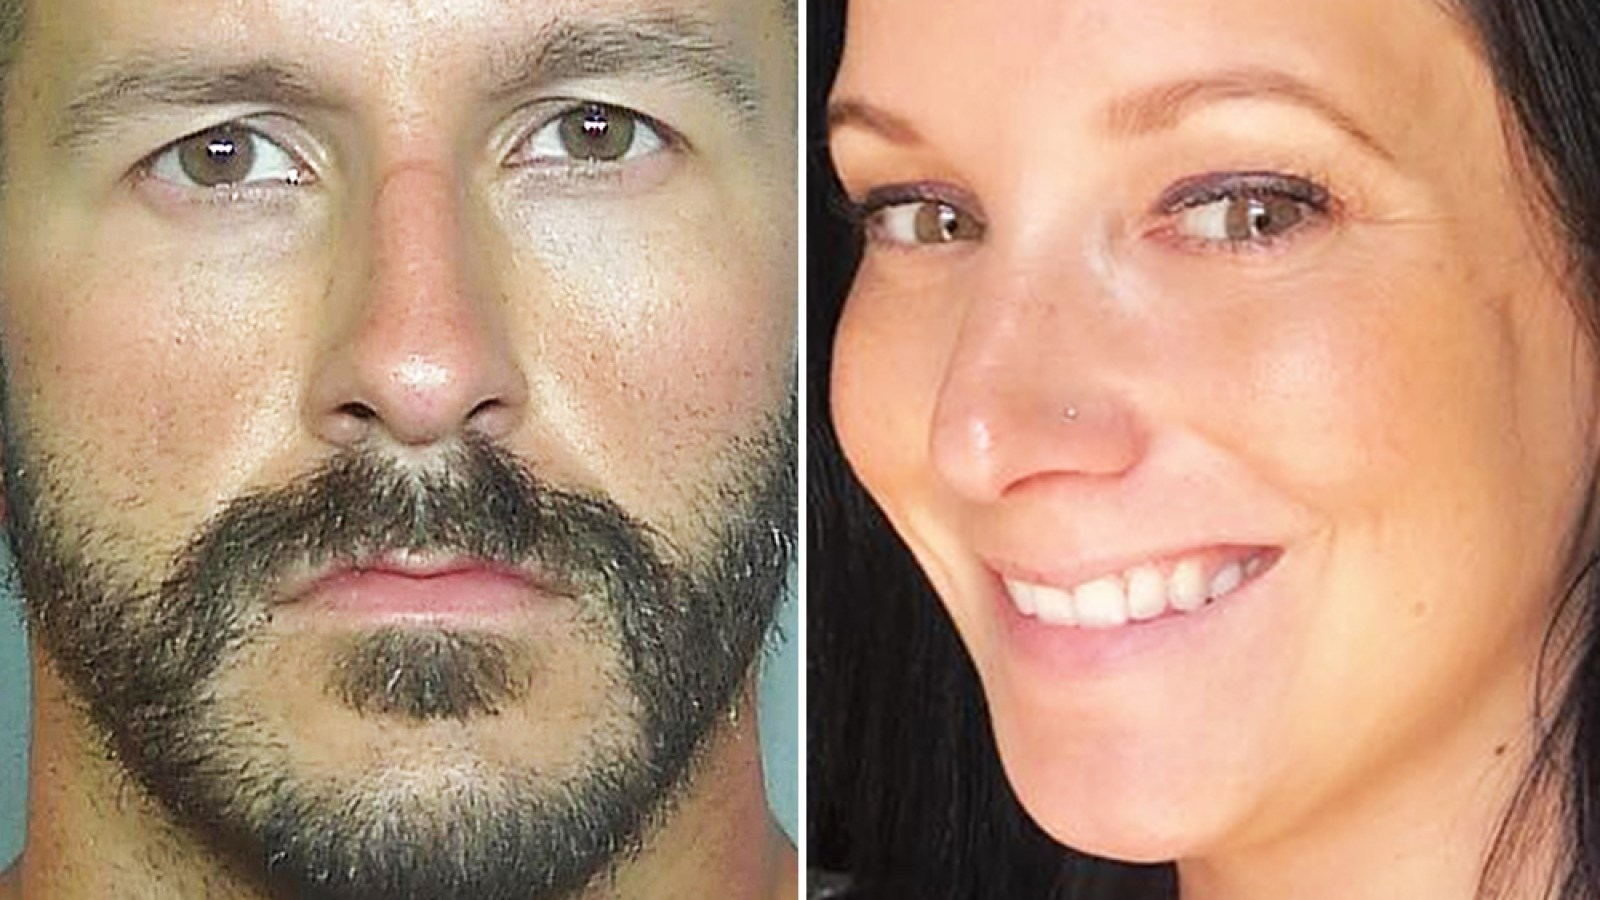 Chris Watts Murder Case: Everything We Know So Far